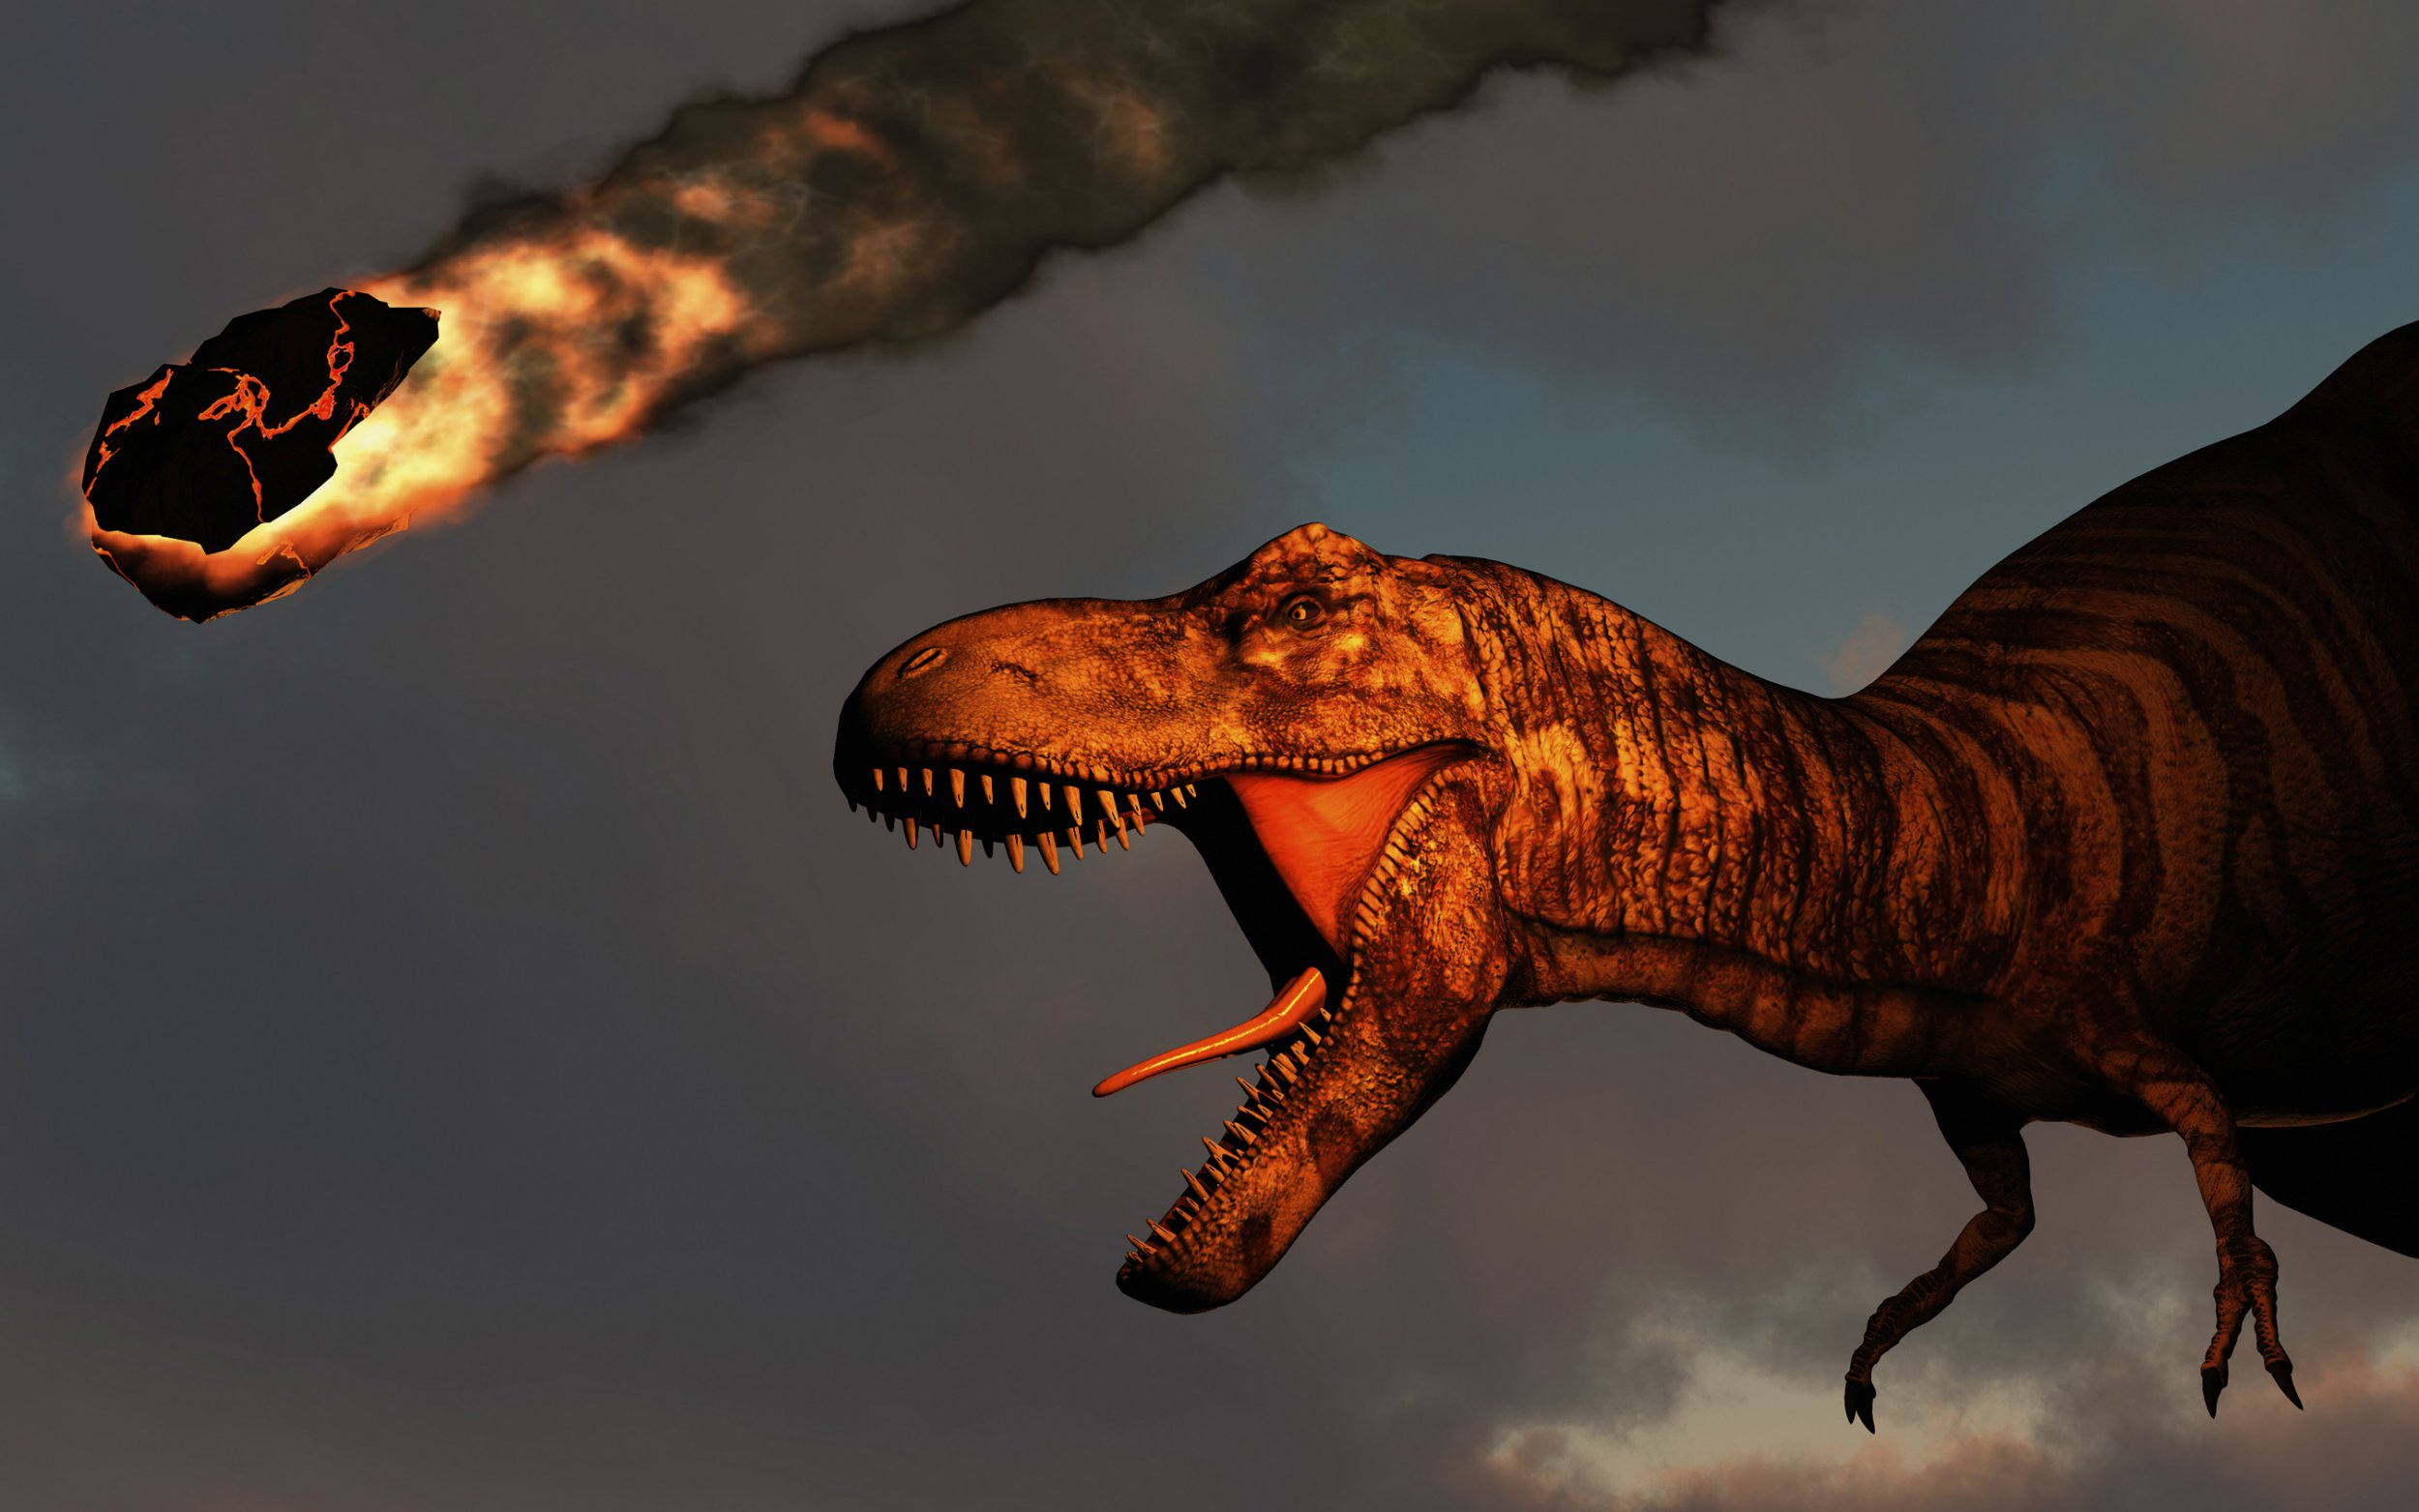 Climate change damage equivalent to asteroid that wiped out dinosaurs, warn scientists